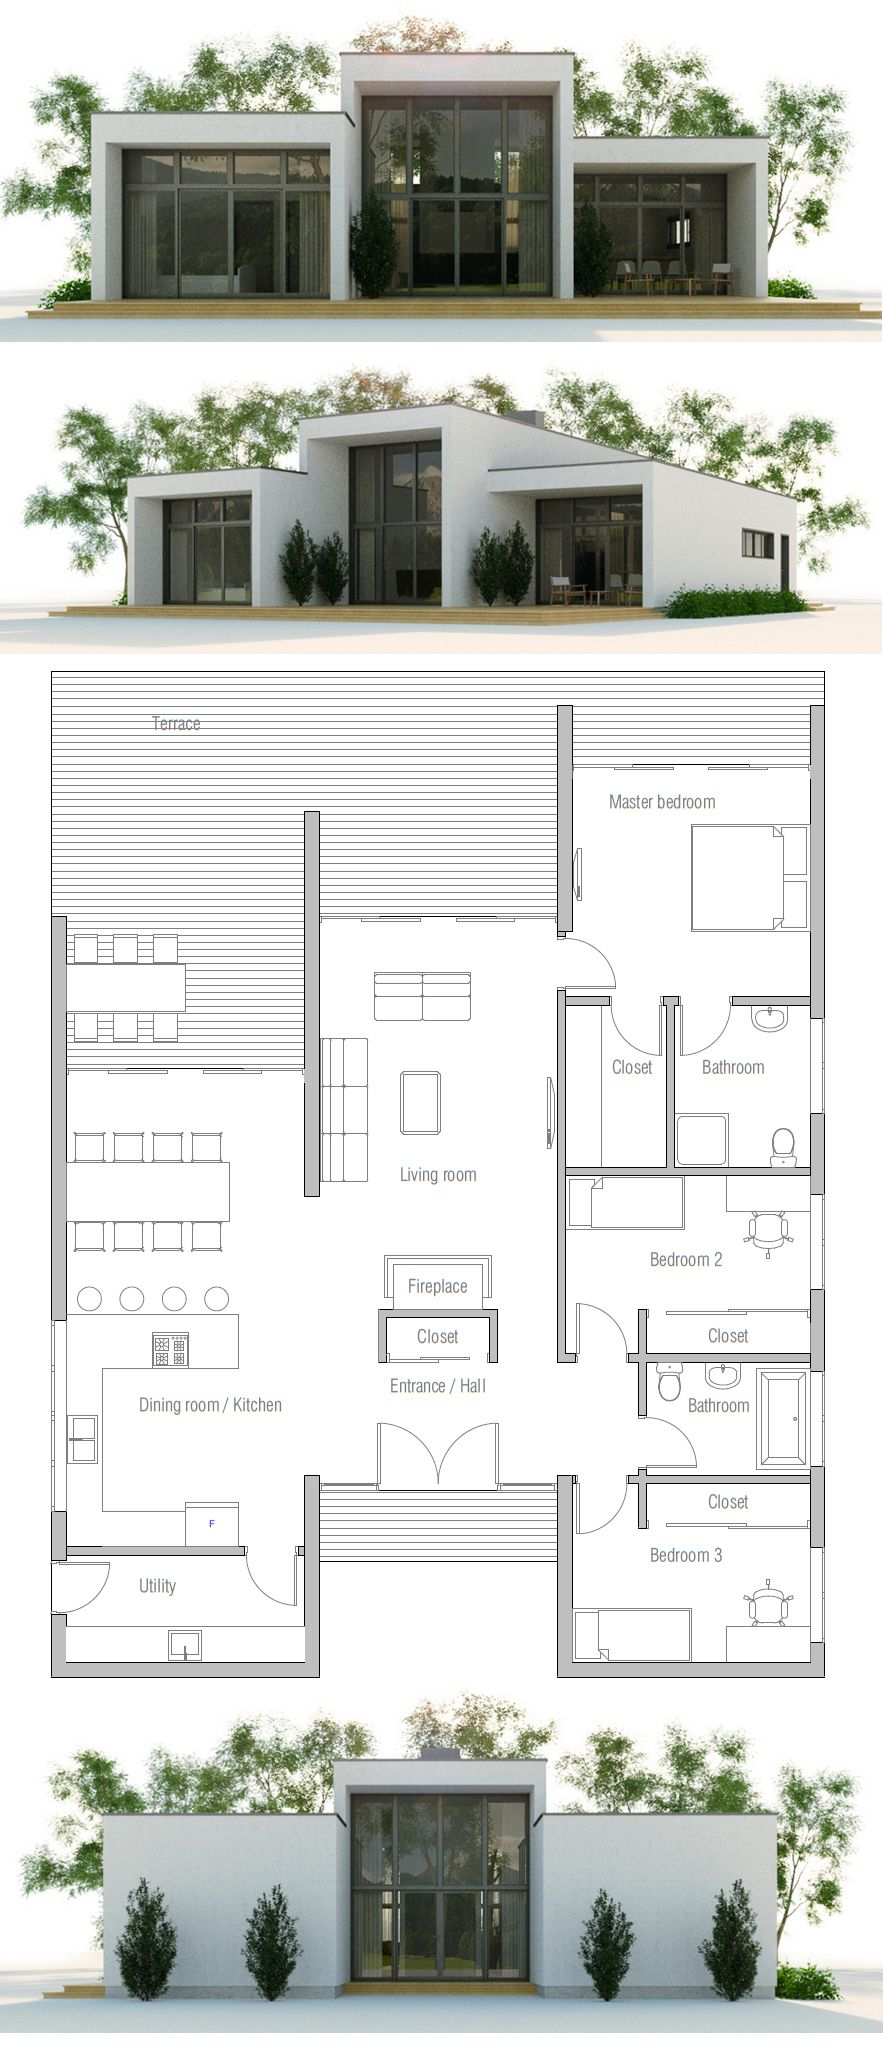 Master bedroom layout  House Plan  Floor Plans  Pinterest  House Architecture and Tiny